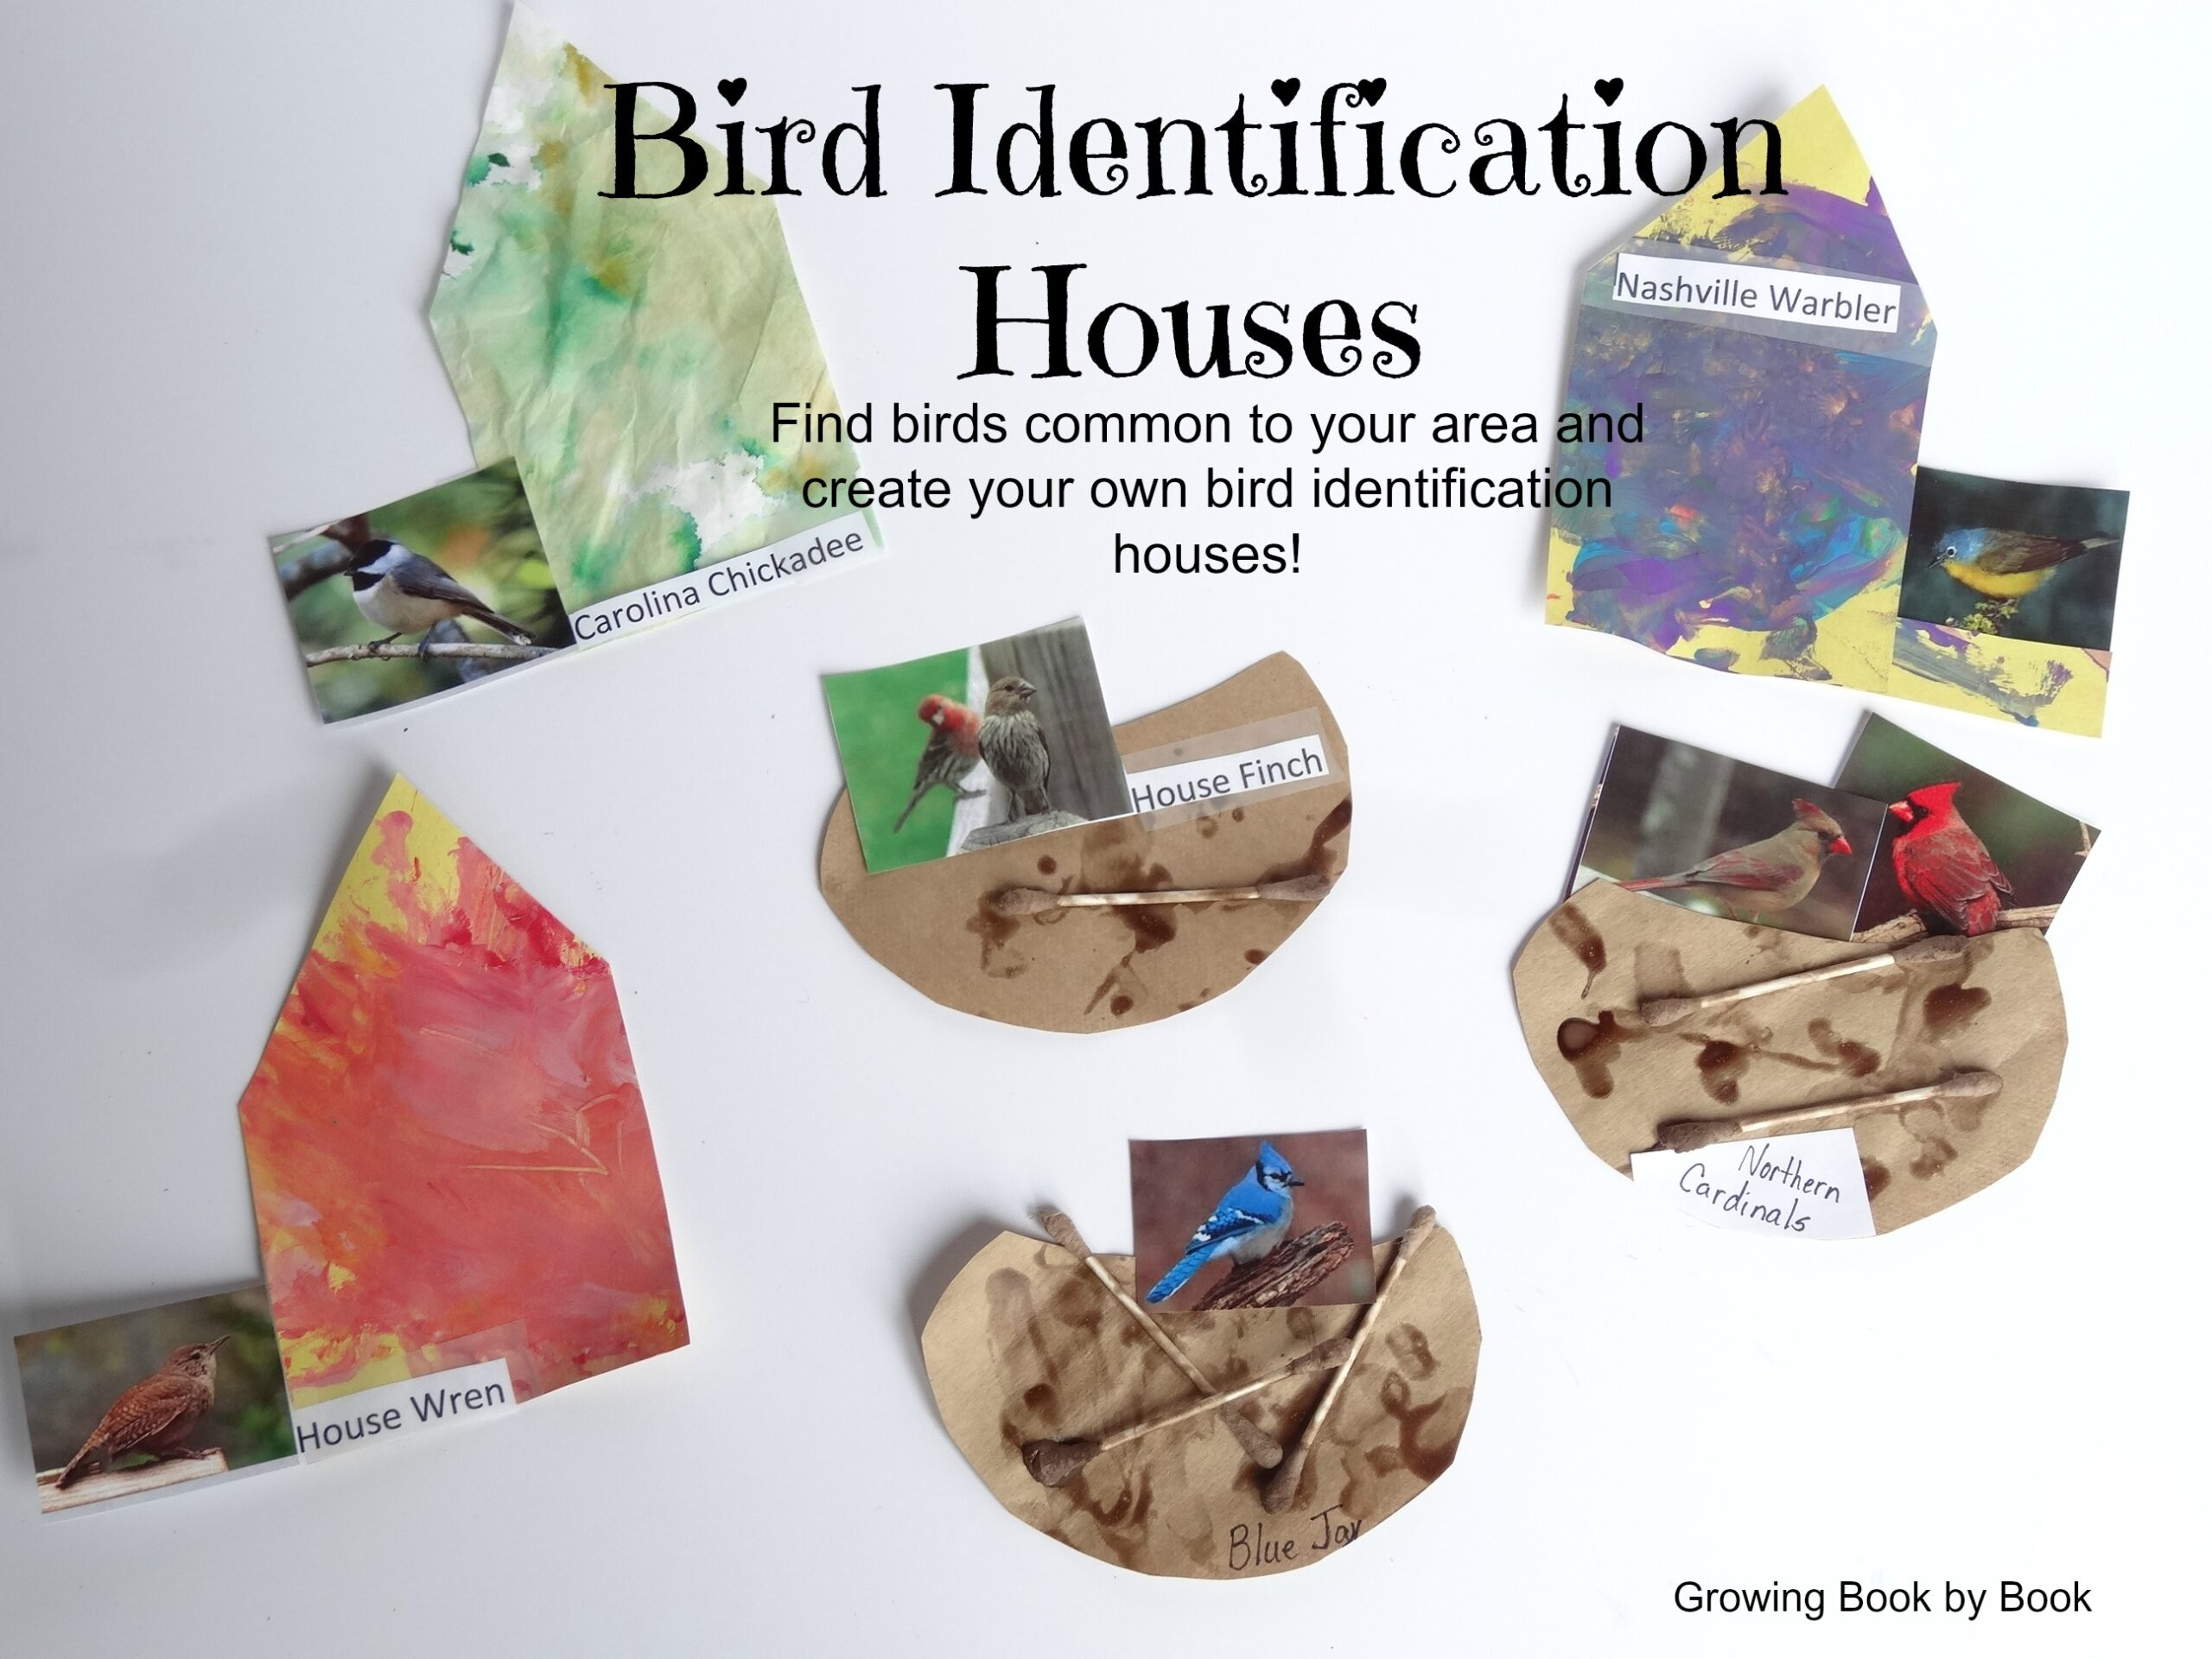 Bird identification houses build your own houses to help for Help build your own home